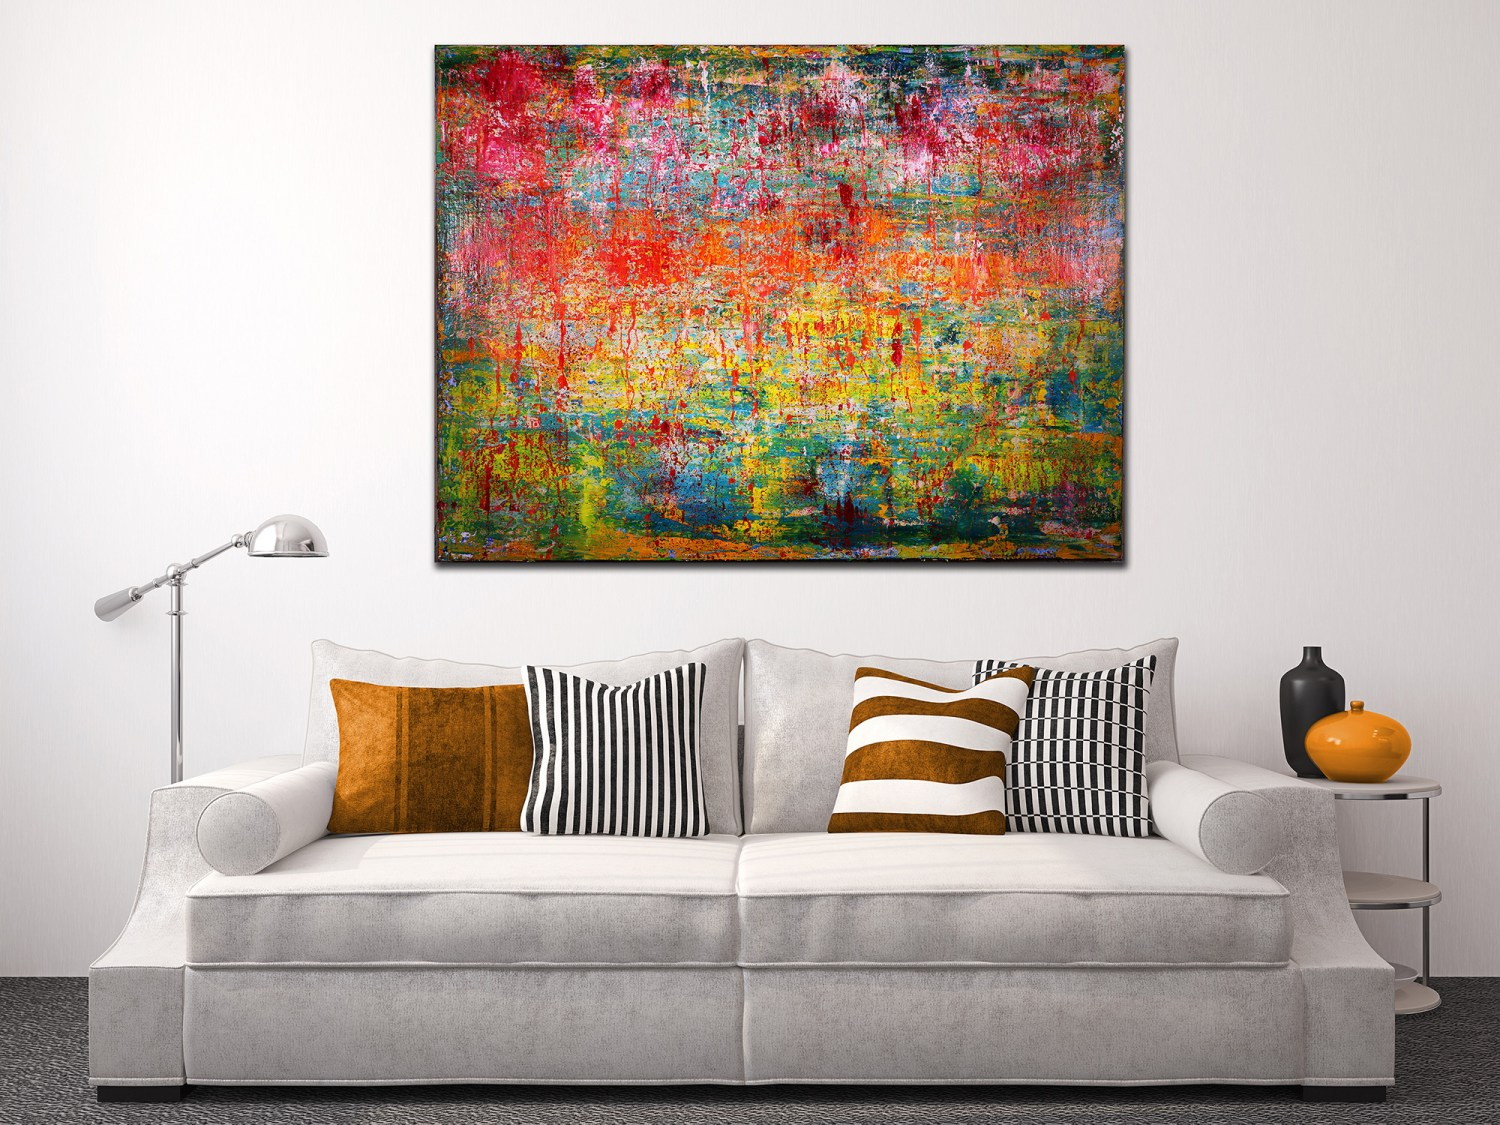 SOLD artwork by abstract painter Nestor Toro